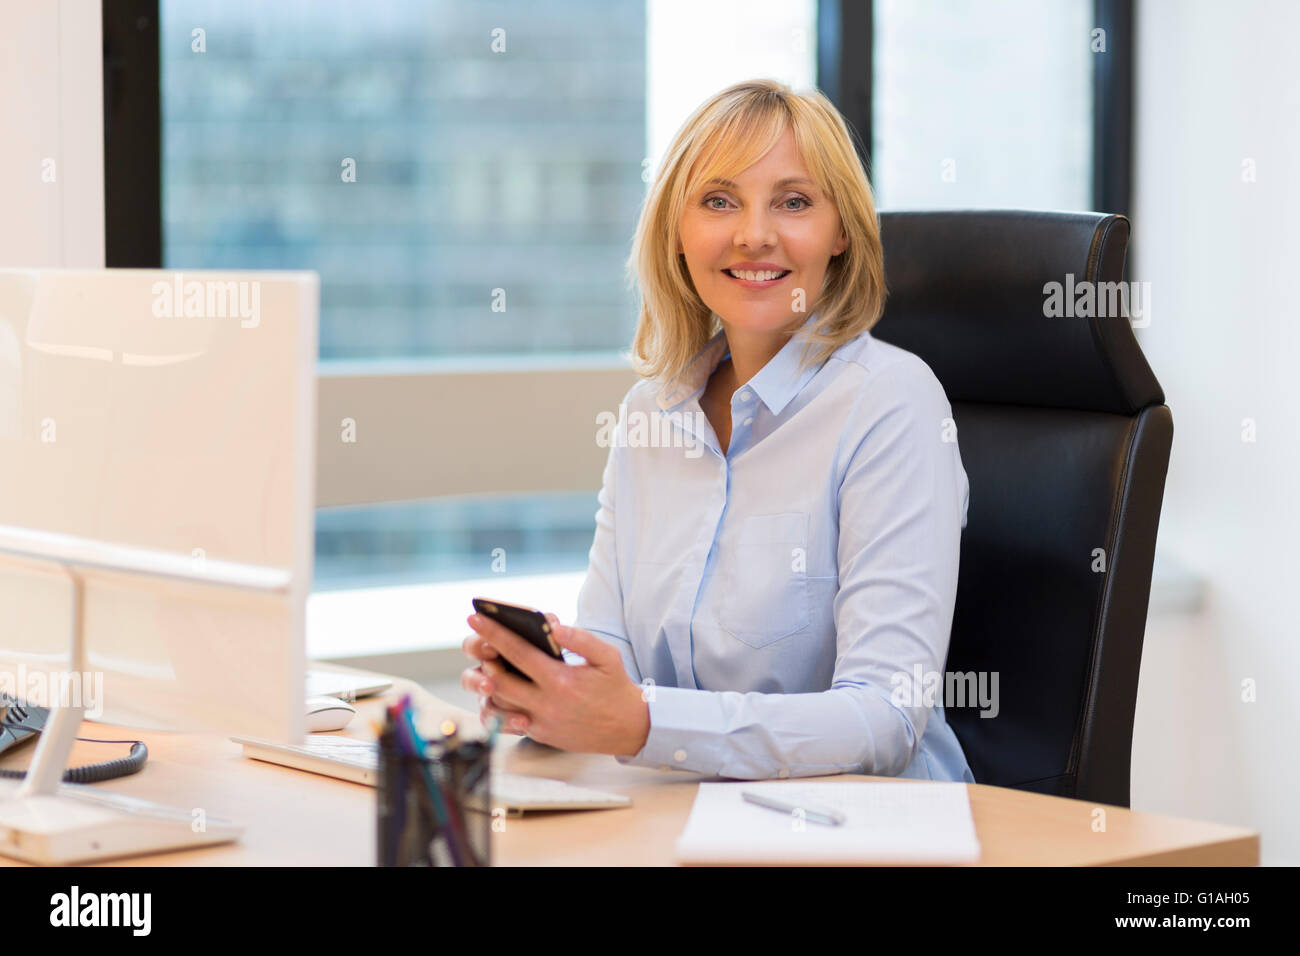 Smiling Middle aged business woman working in modern office. Looking at camera Stock Photo